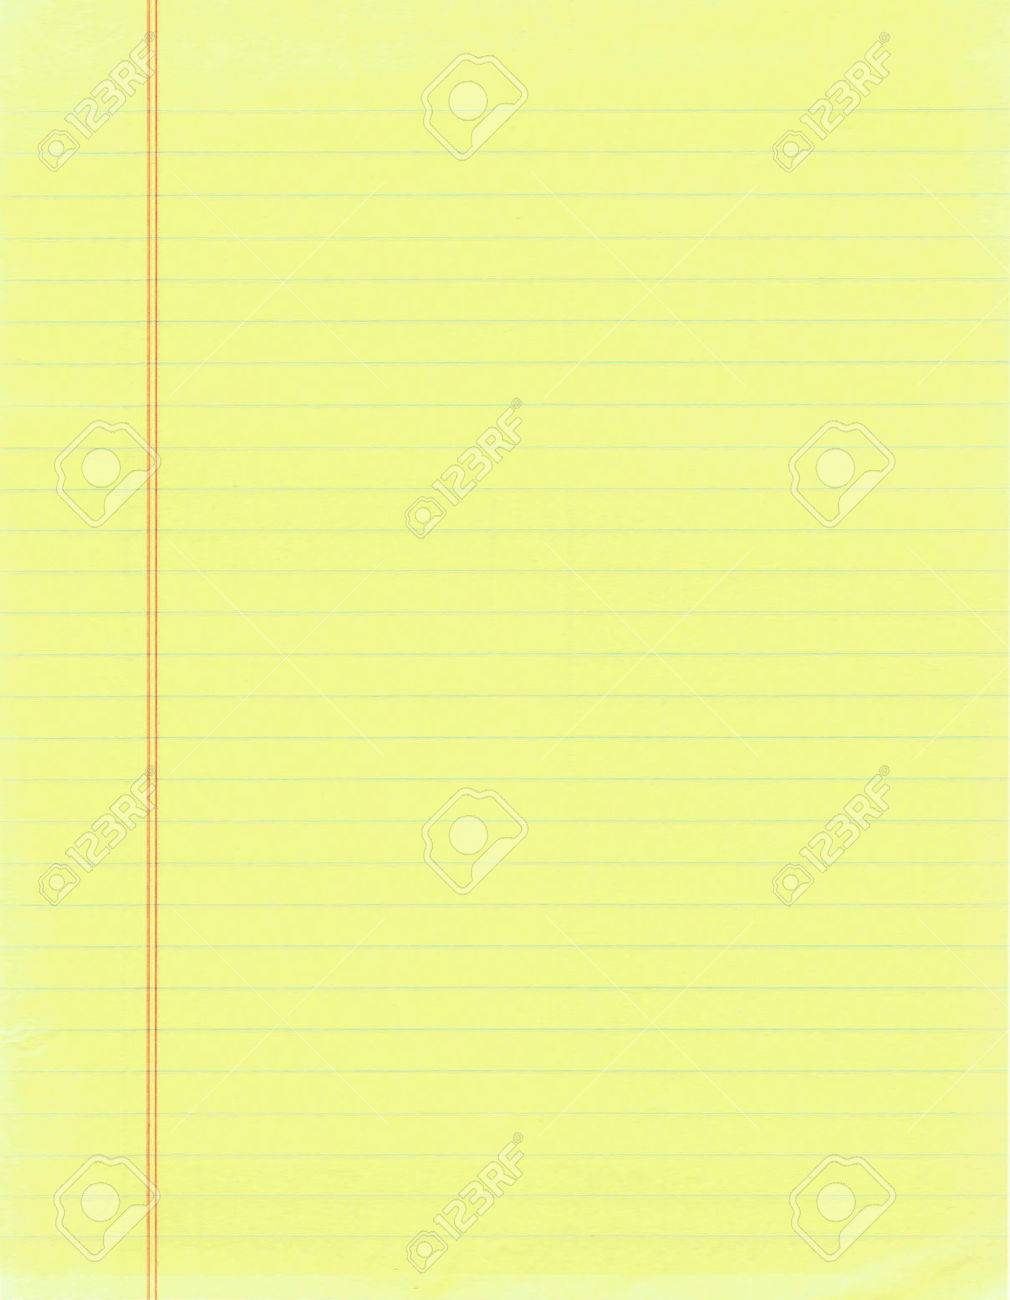 Blank Page Of Yellow Lined Paper Stock Photo Picture And Royalty 50080518 Blank  Page Of Yellow  Blank Lined Page